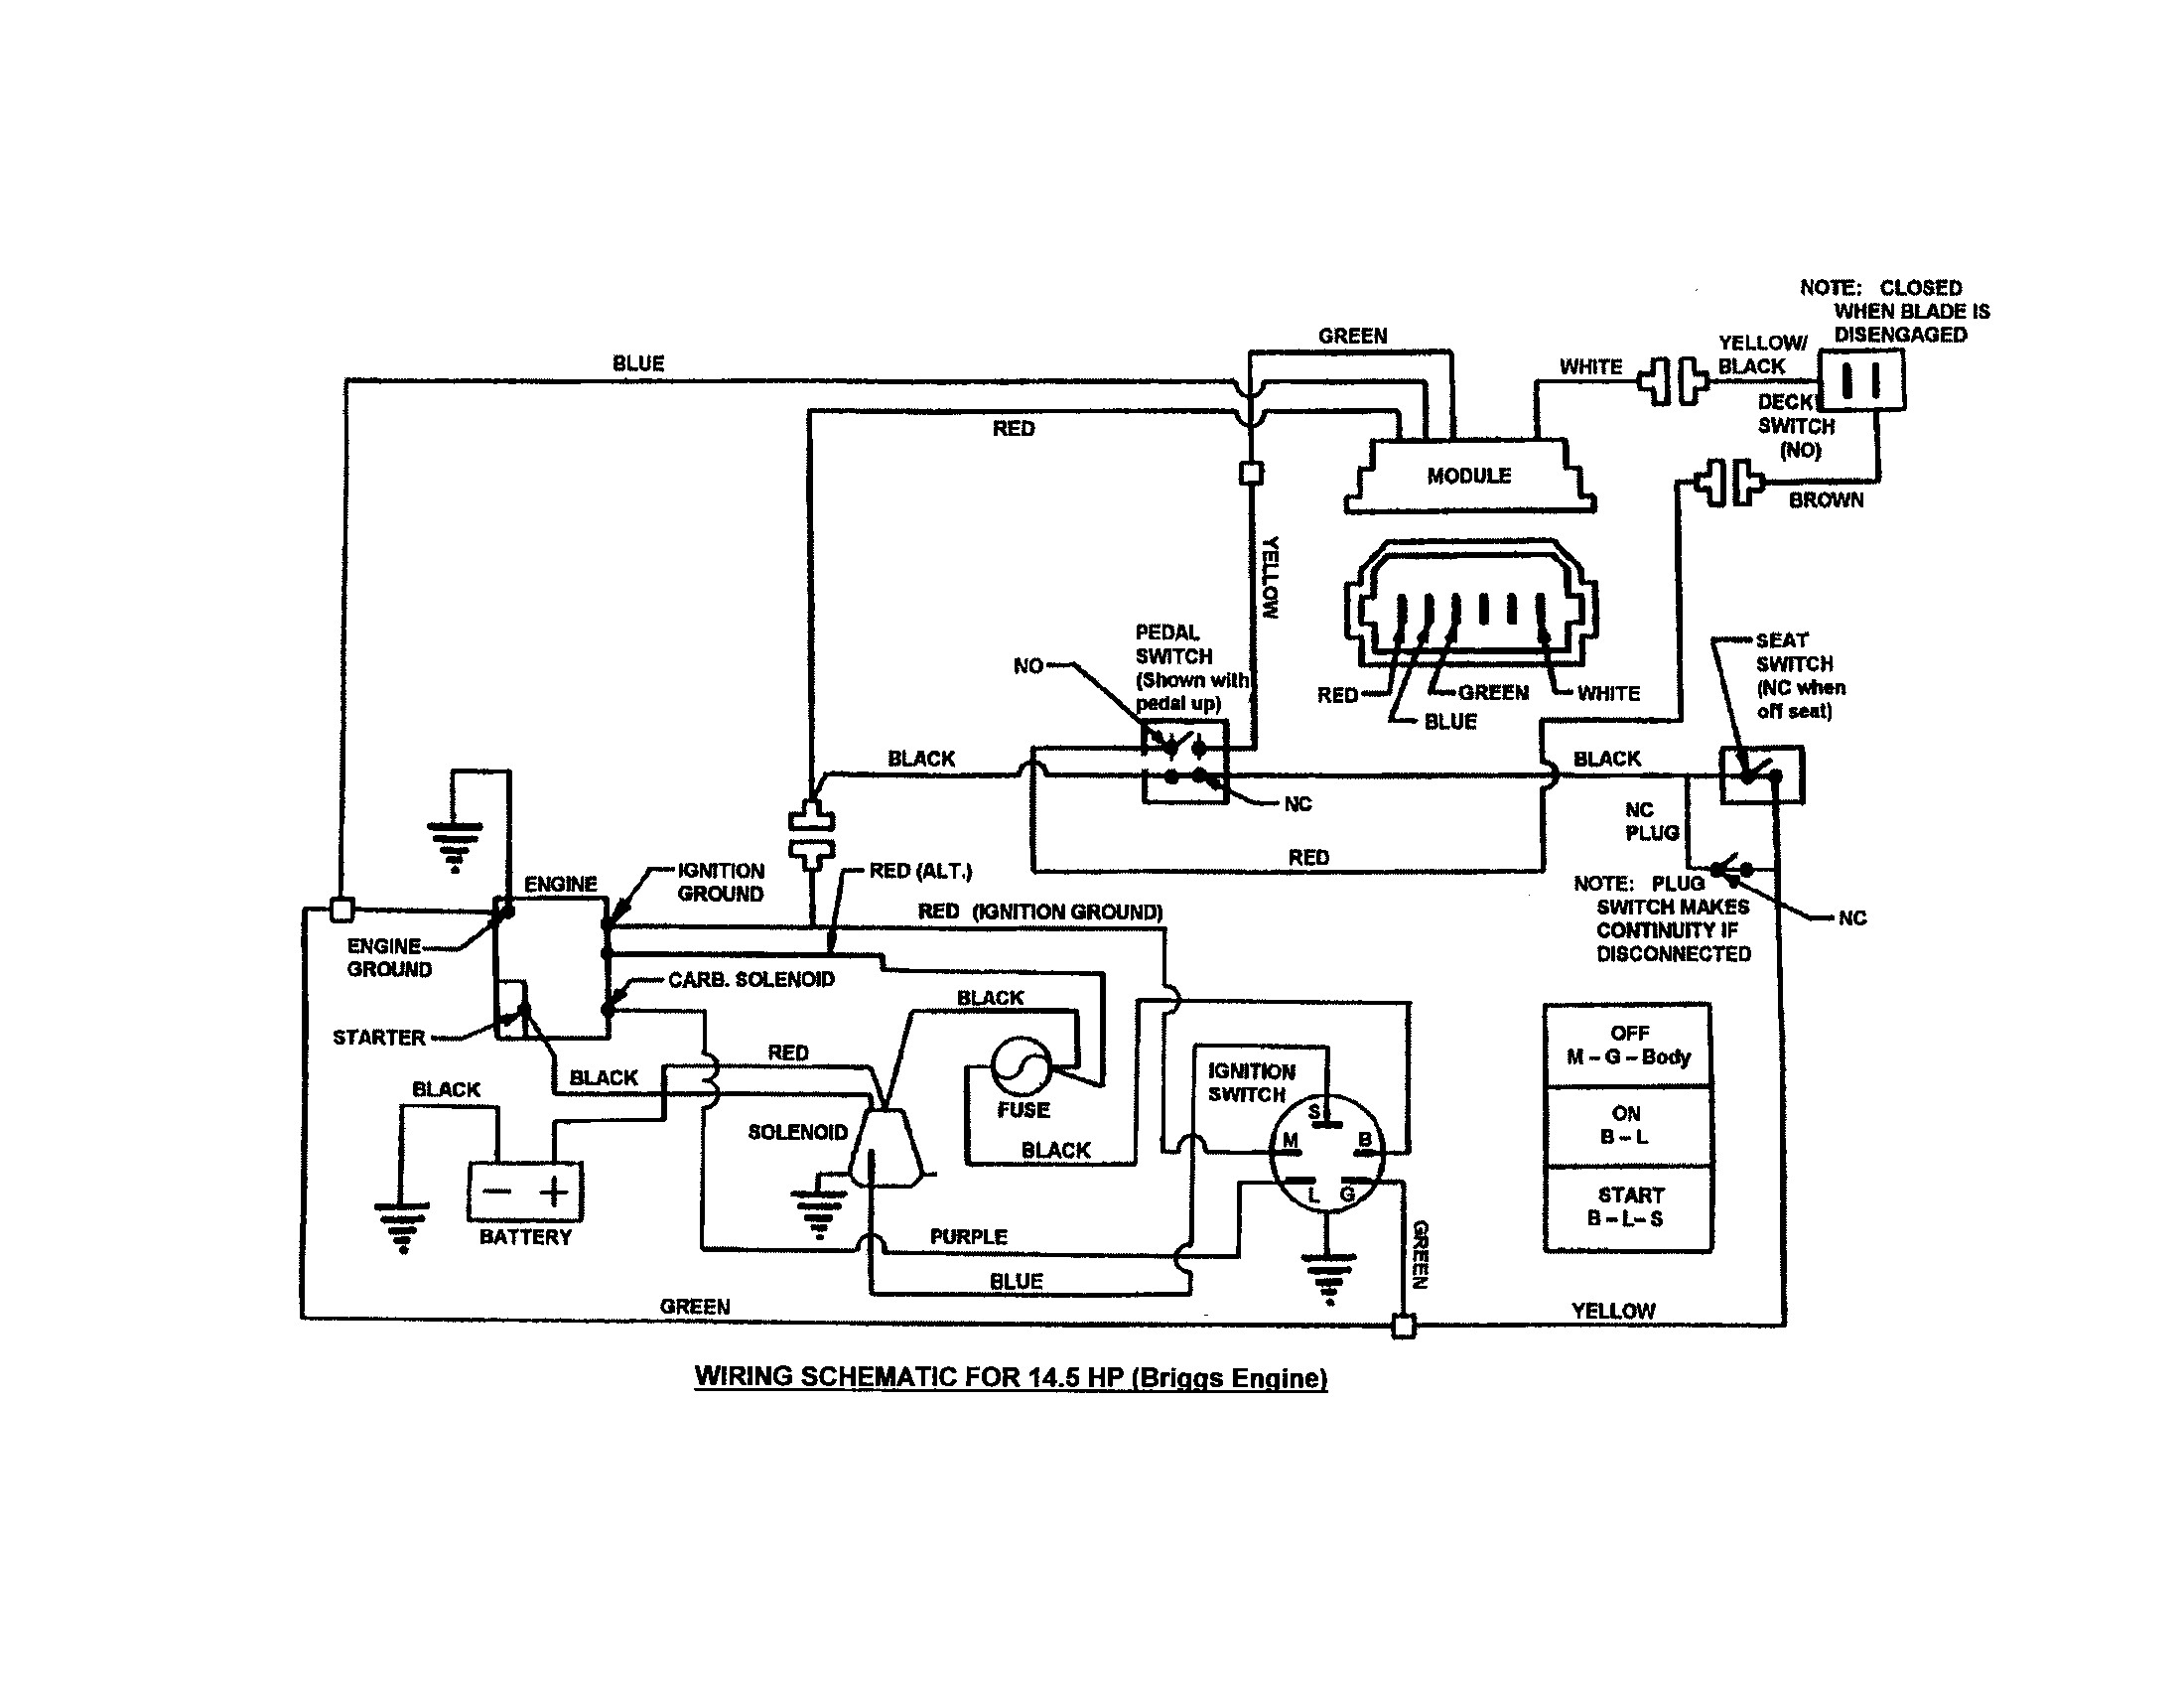 Murray Riding Lawn Mower Starter Solenoid Wiring Diagram from i0.wp.com